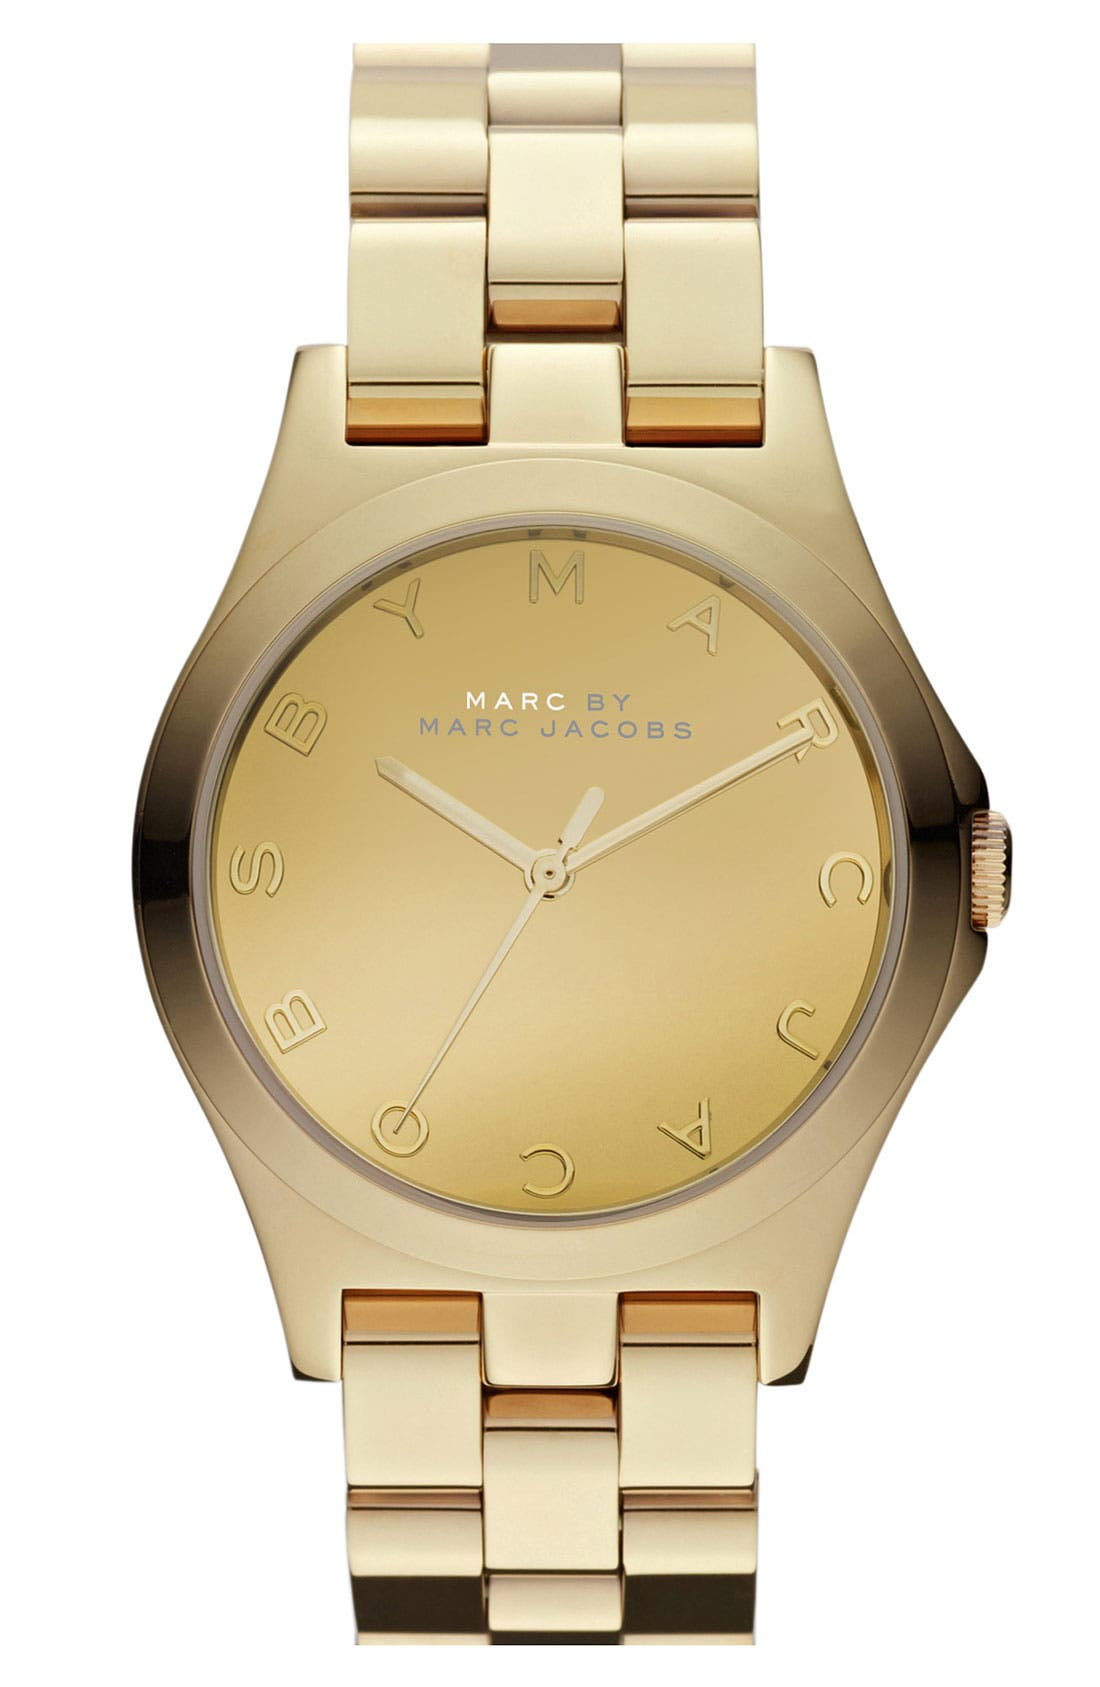 Main Image - MARC JACOBS 'Henry Glossy' Bracelet Watch, 36mm